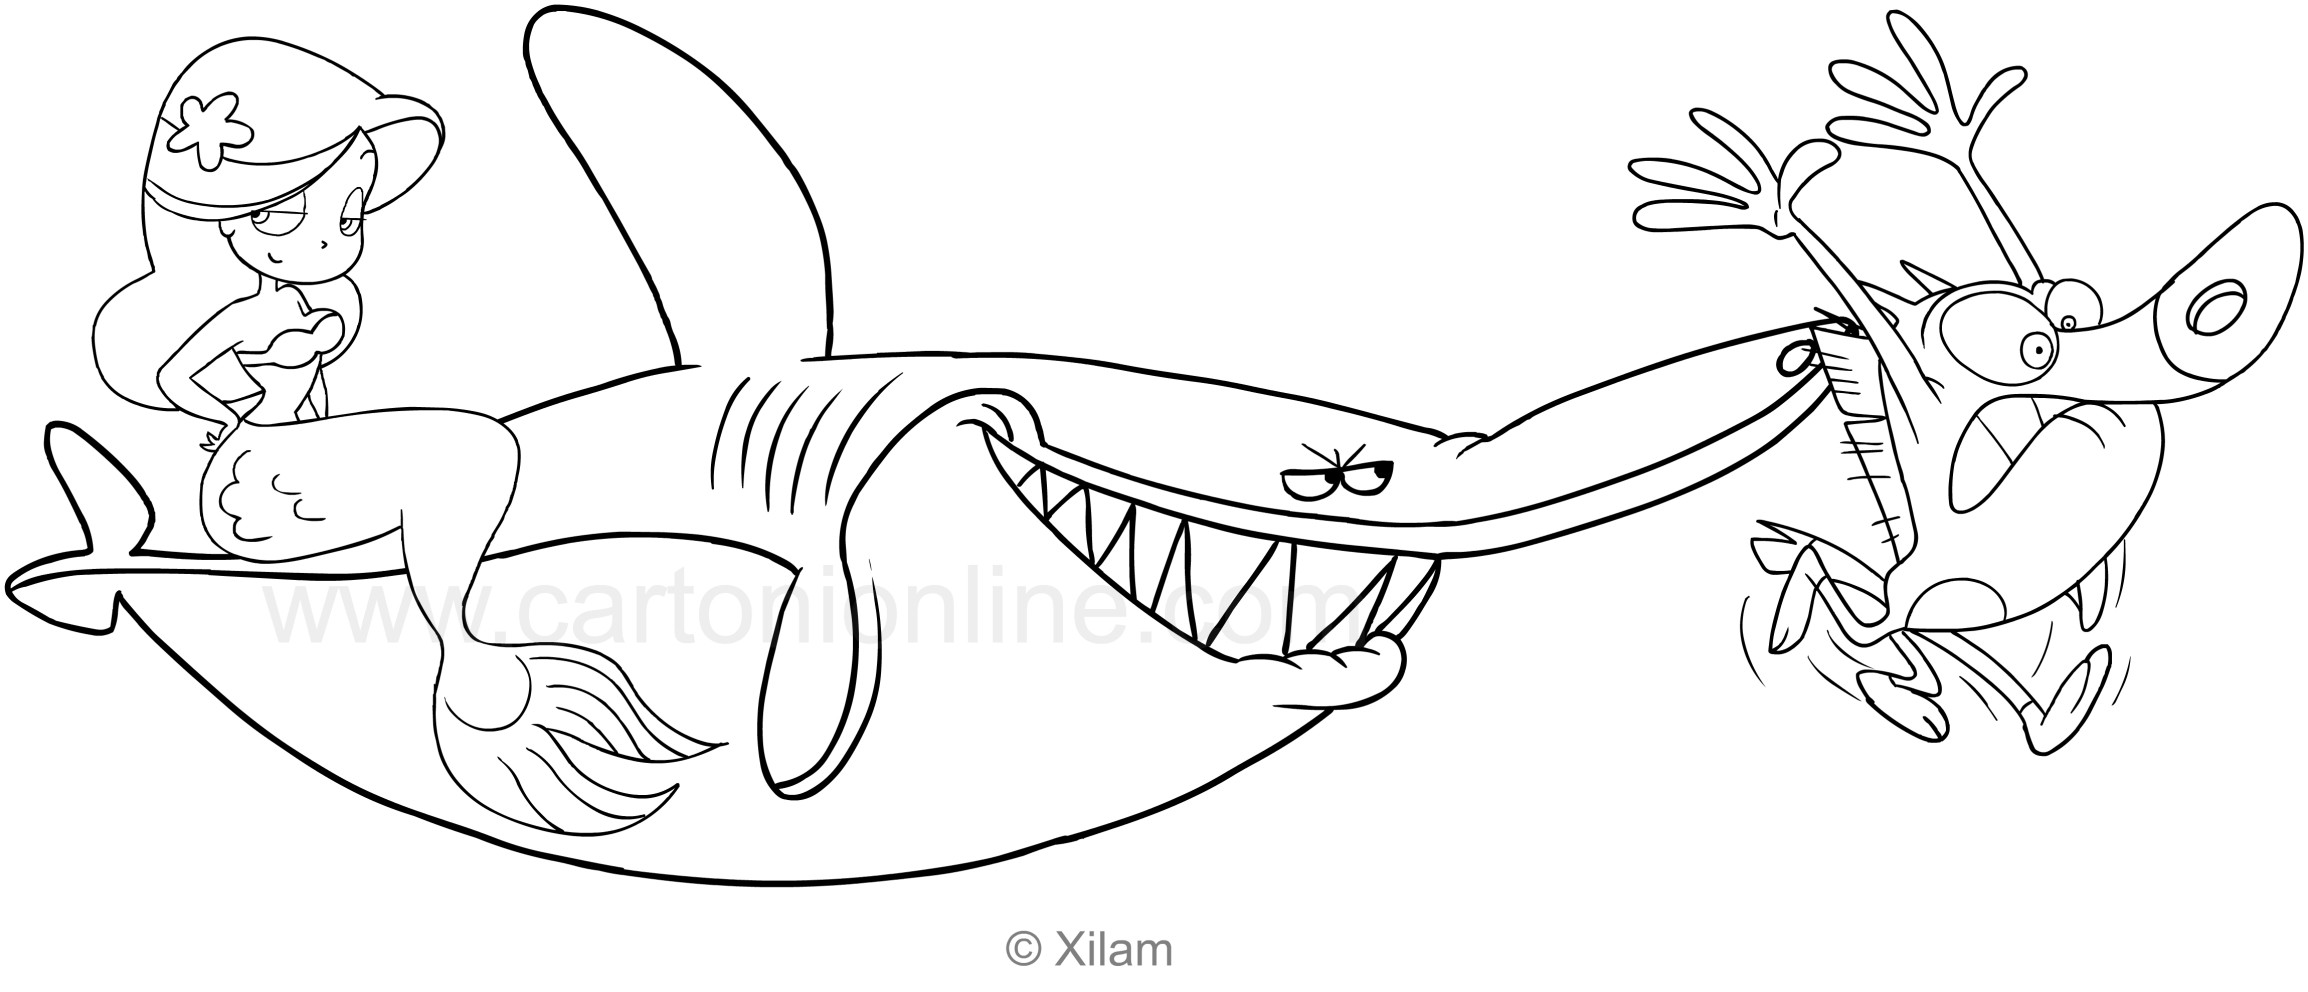 Disegno di zig sharko e marina da colorare for Zig e sharko marina